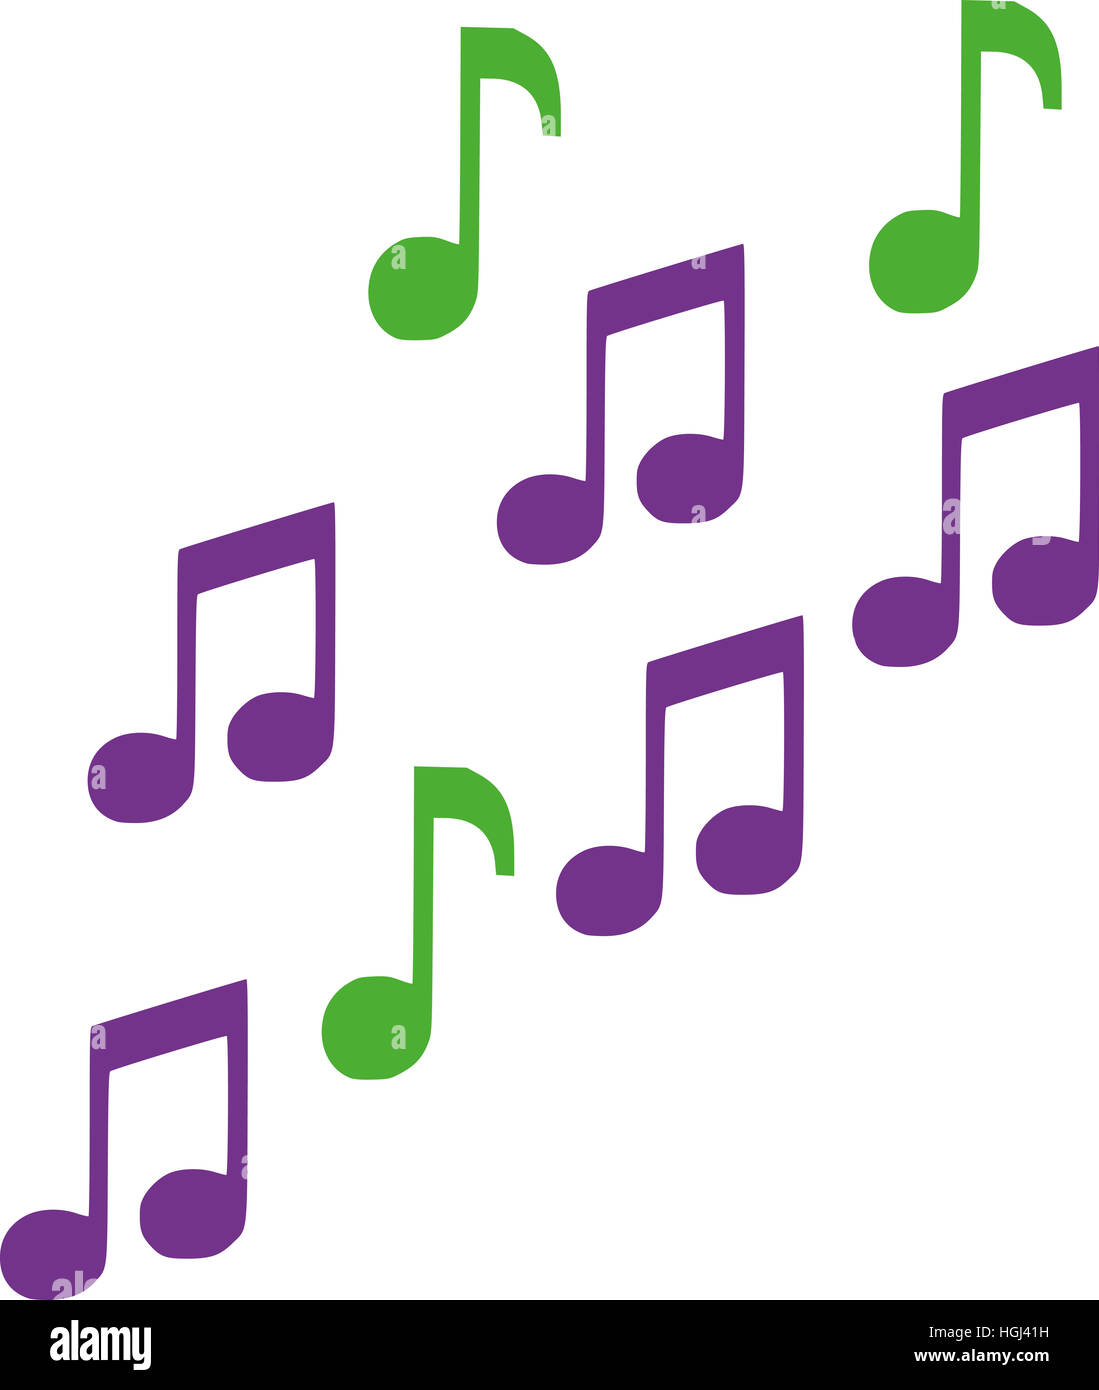 Green and lila music notes - Stock Image